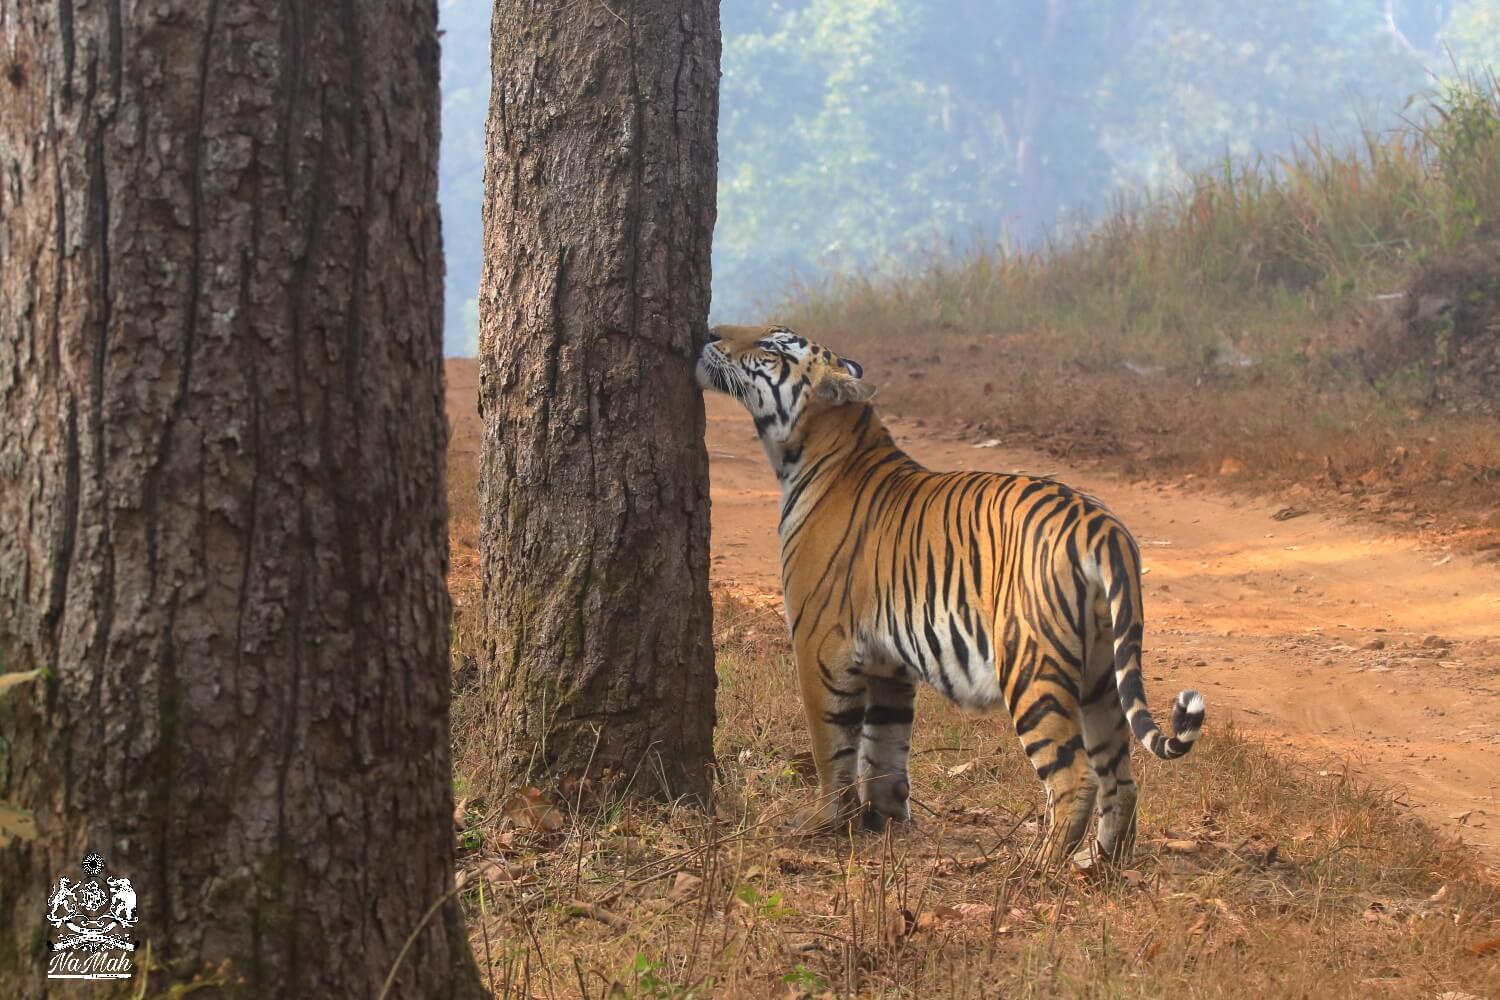 Tiger snifs tree to check for other wild cats in area